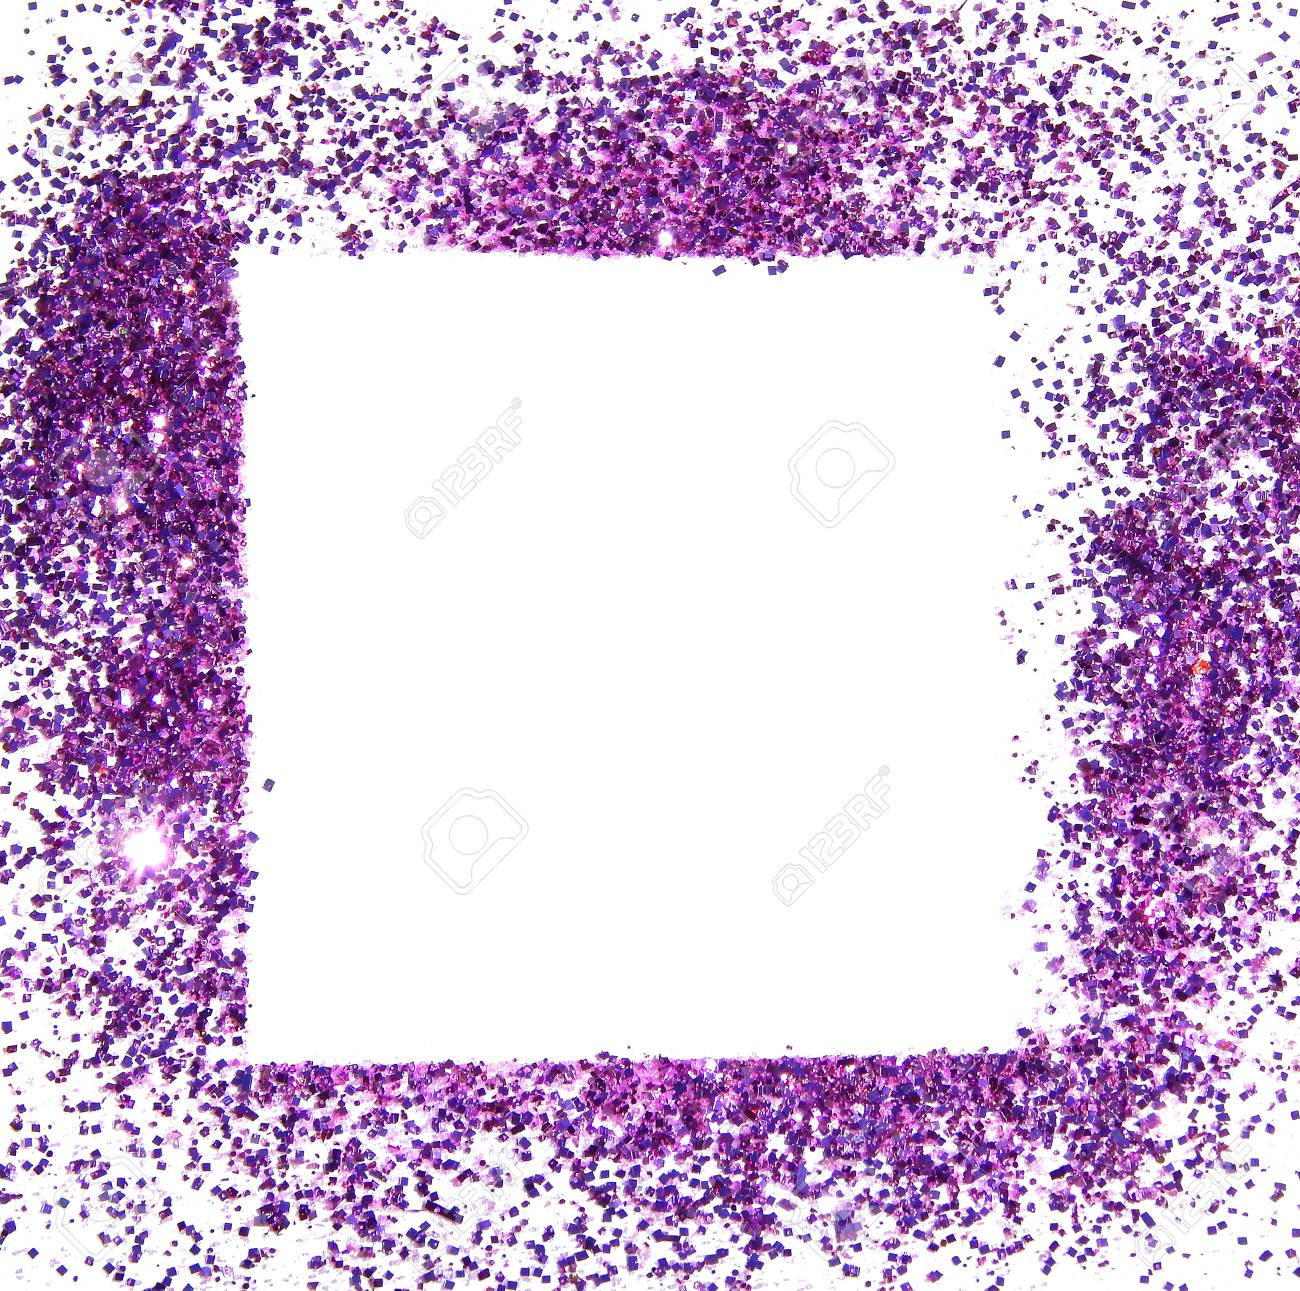 Frame Of Purple Glitter Sparkle On White Background, Can Be Used ...